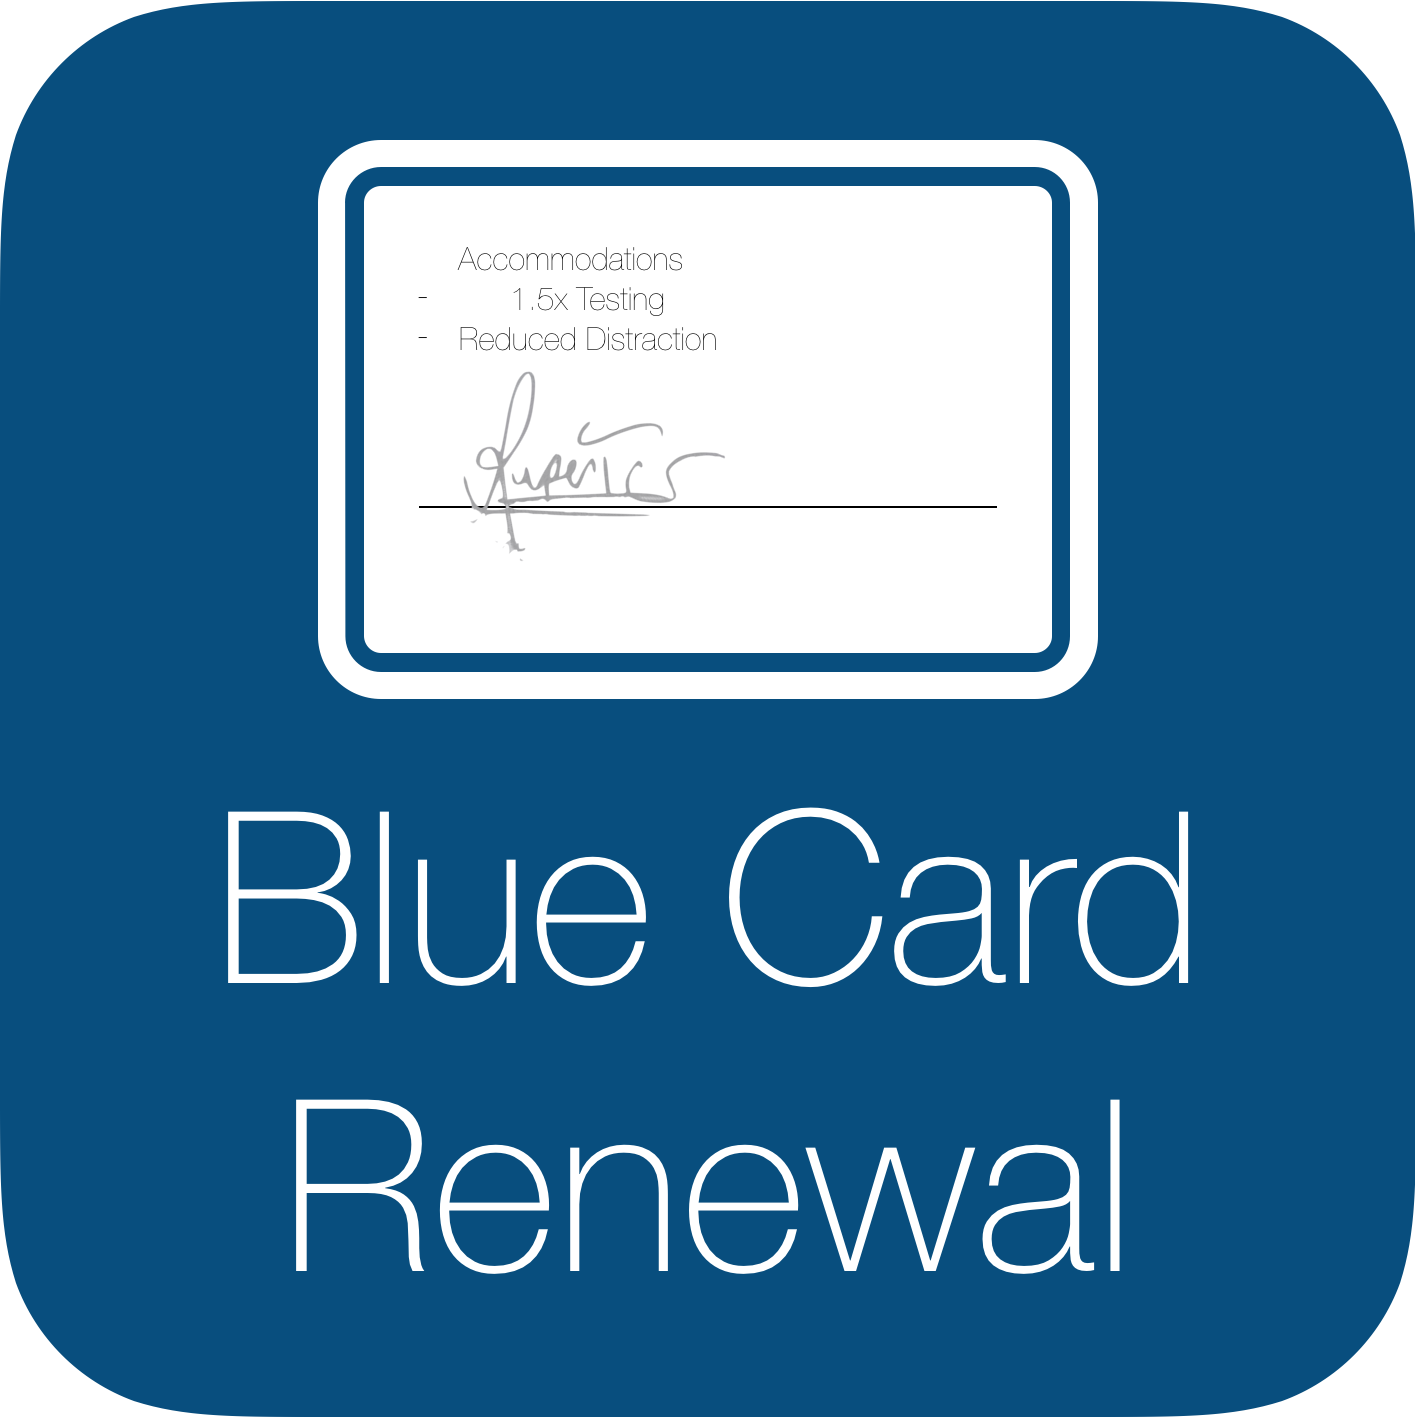 Blue Card Request Form Icon